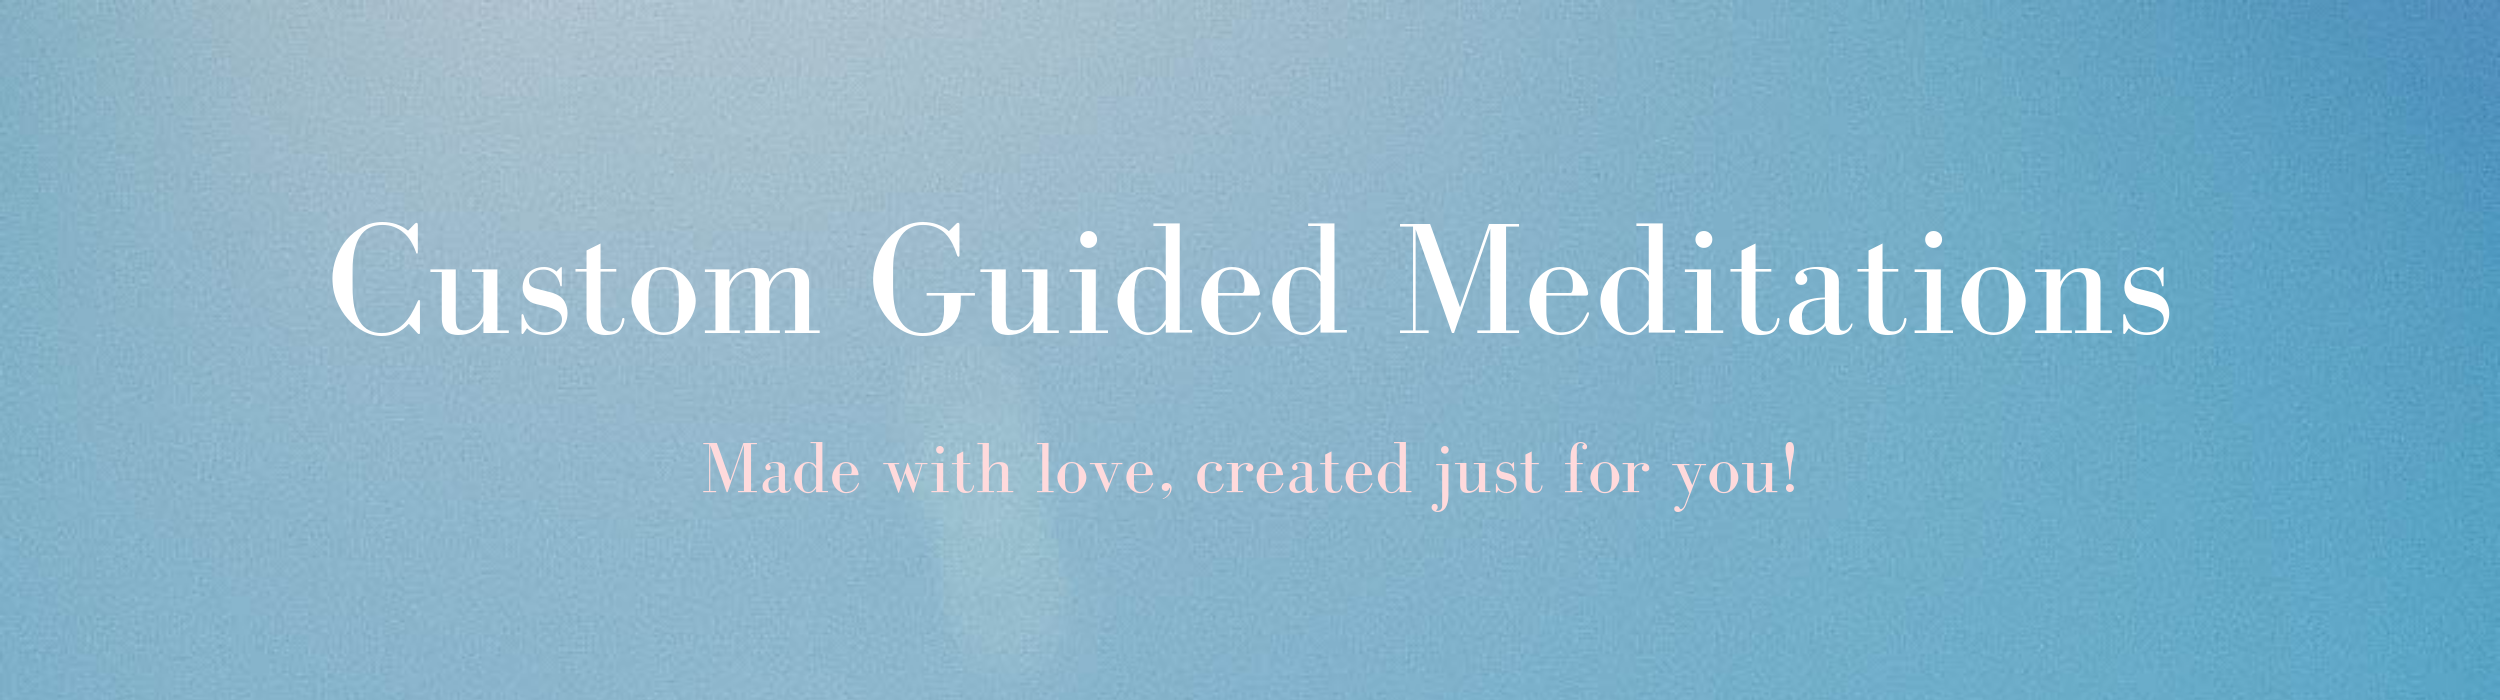 custom guided meditations.png